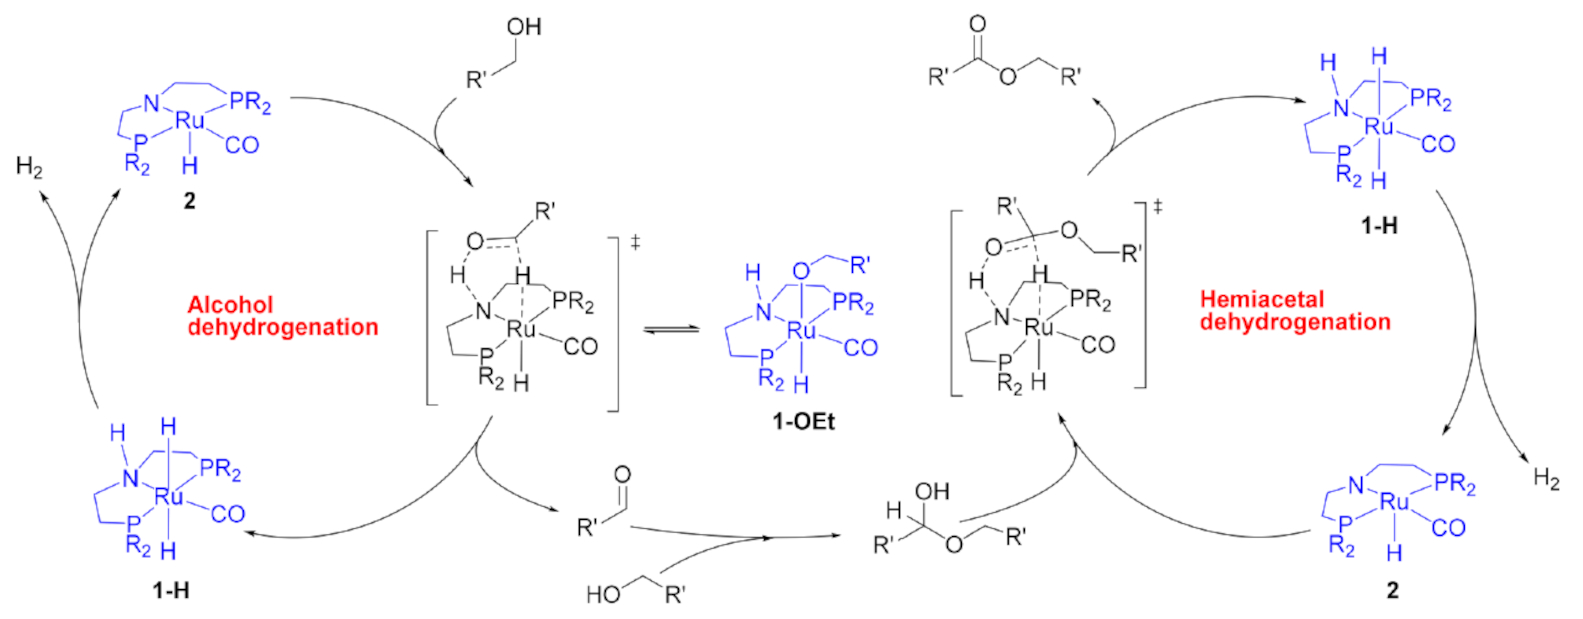 ACD reaction_AFR